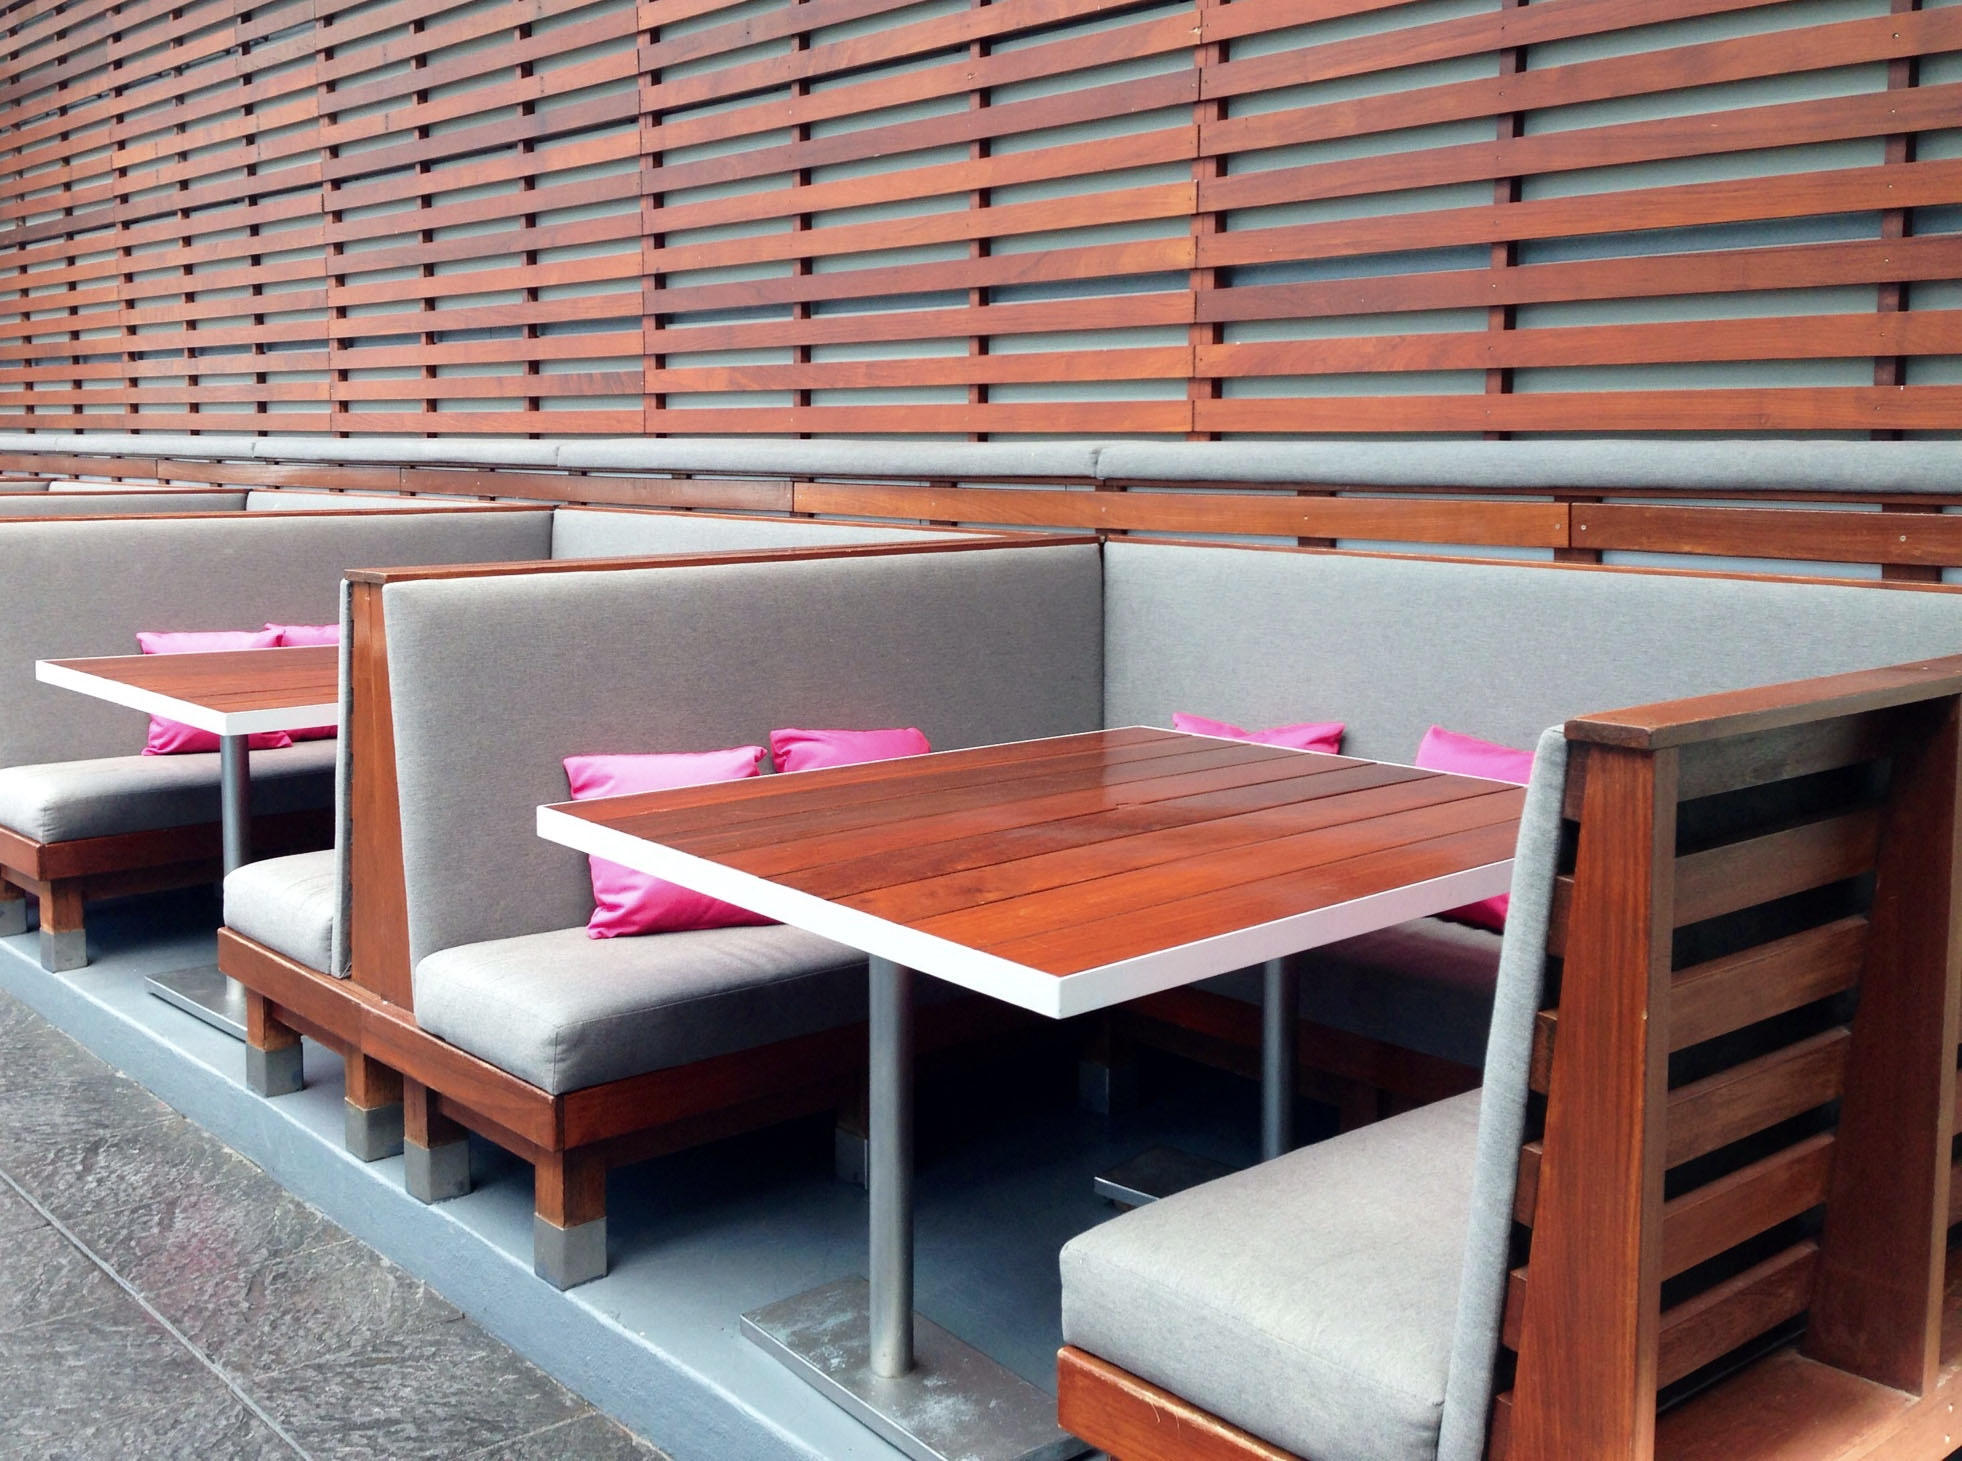 WITHotelRoofChicago-RecoveredInteriorUpholstery2